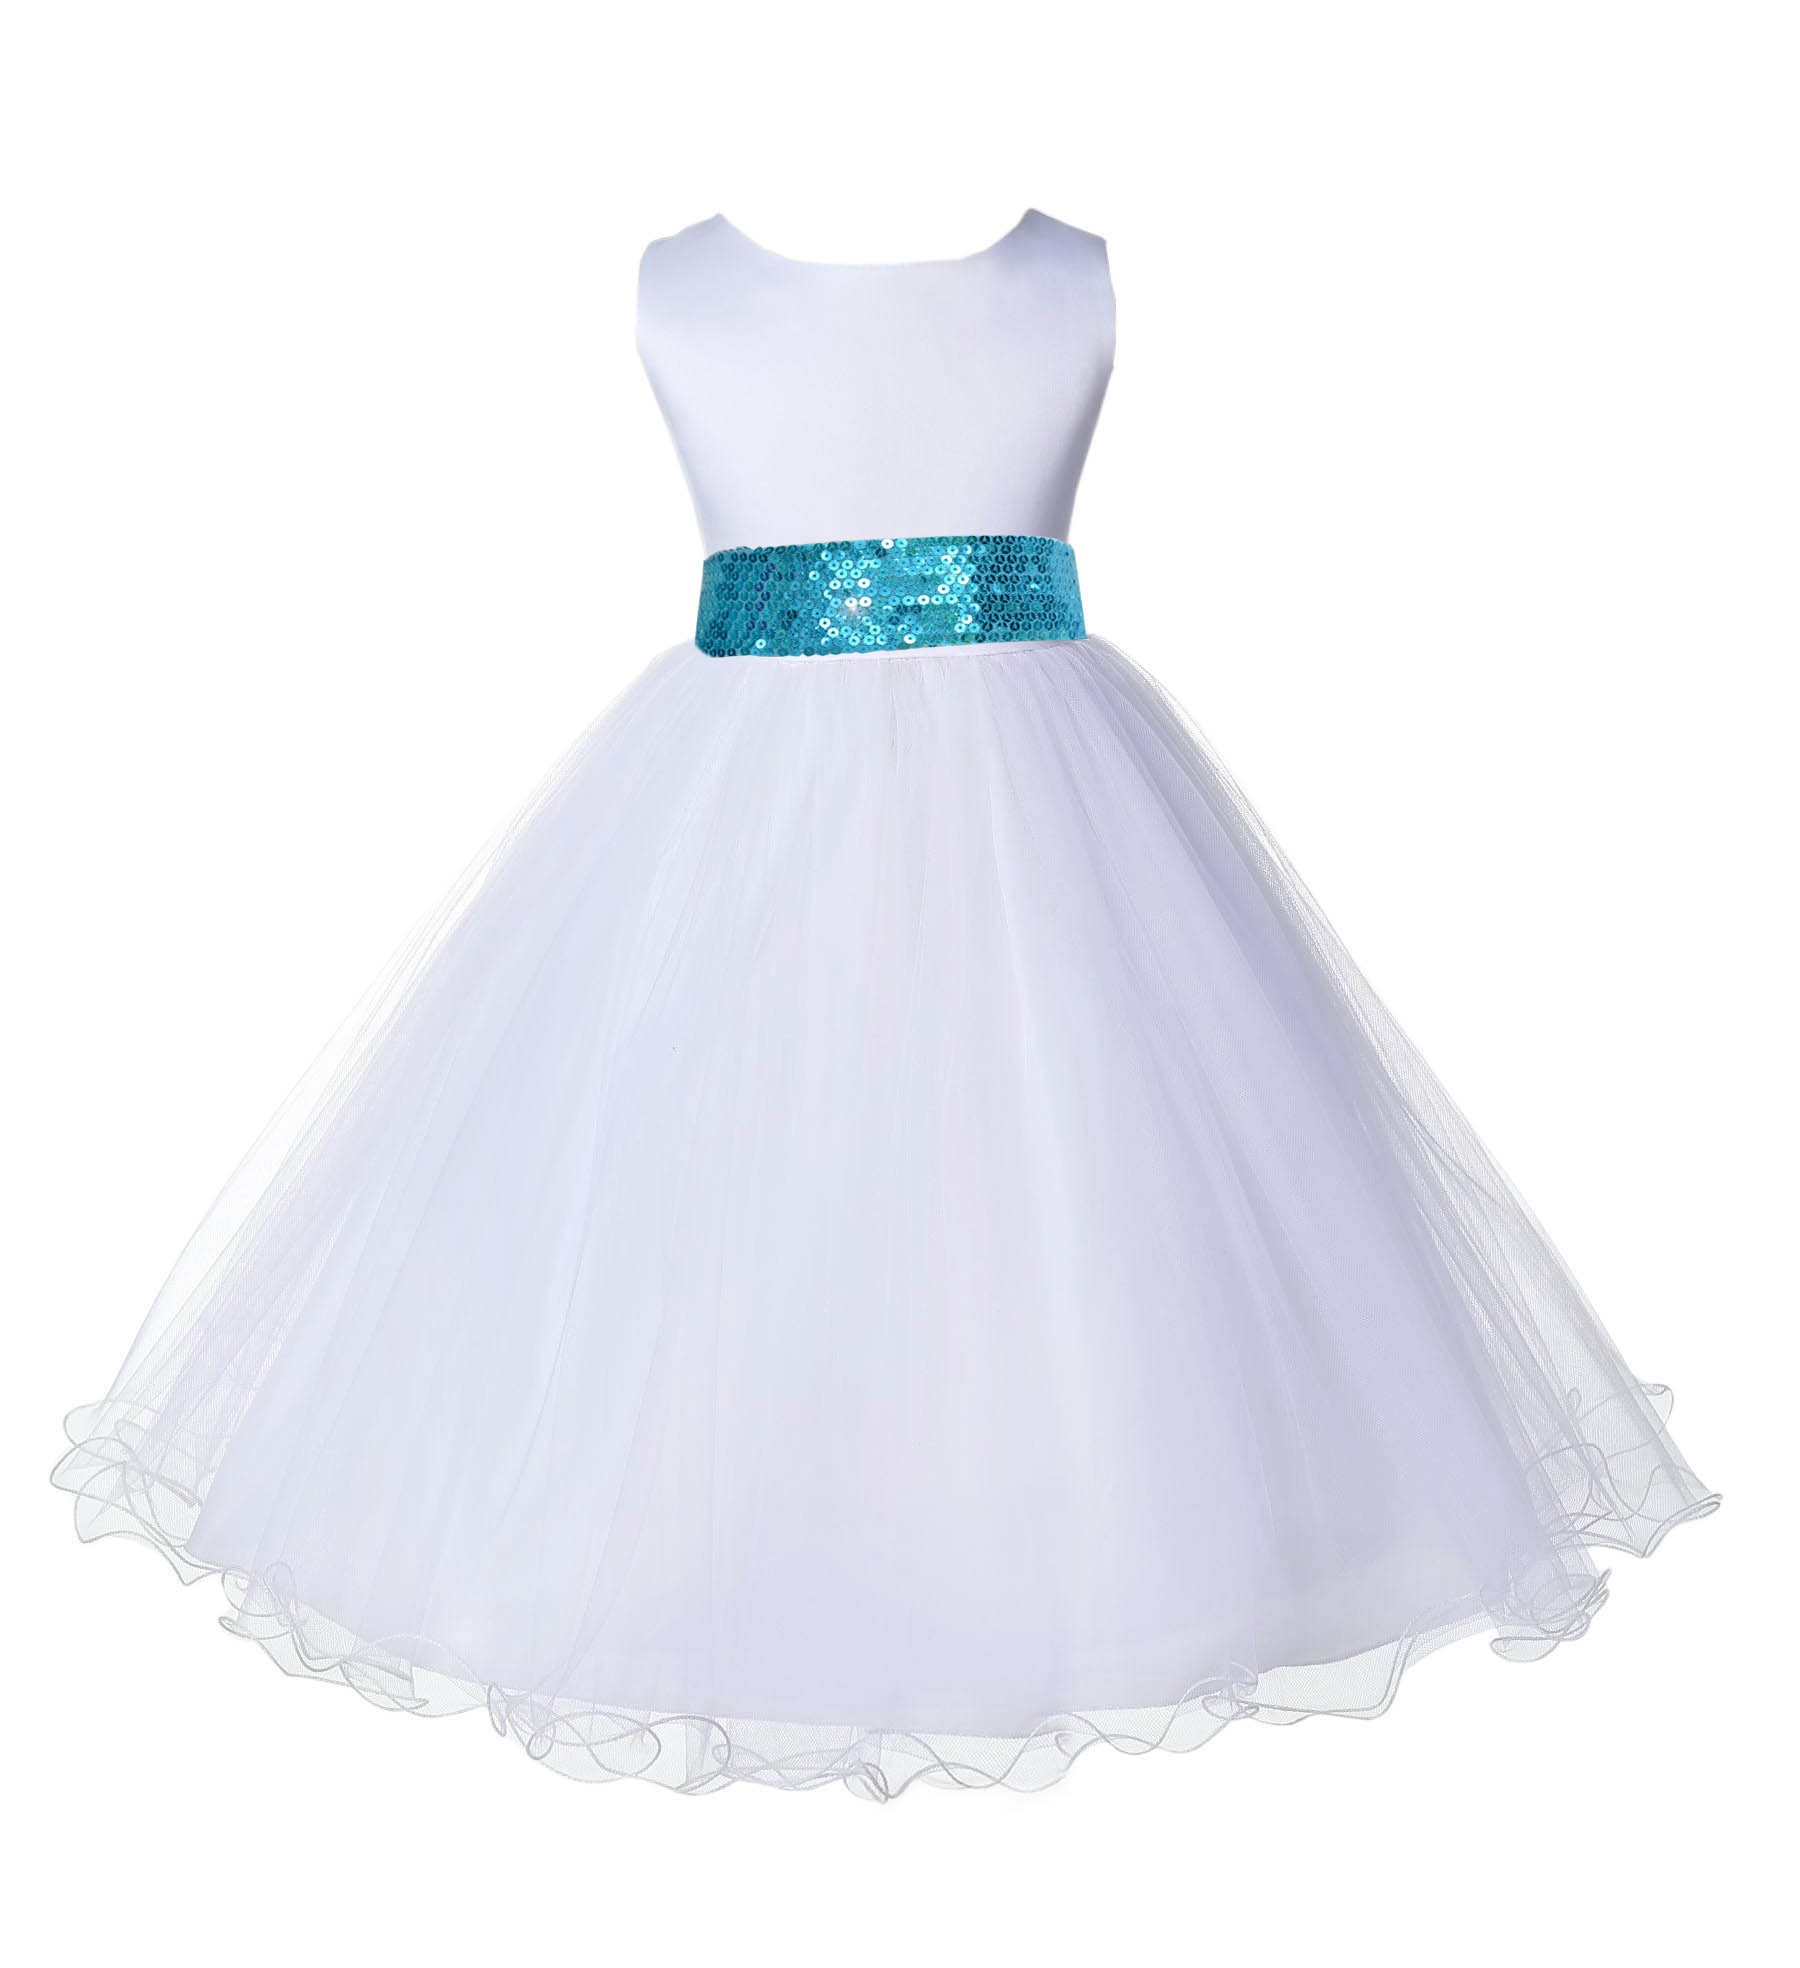 White Tulle Rattail Edge Turquoise Sequin Sash Flower Girl Dress 829mh